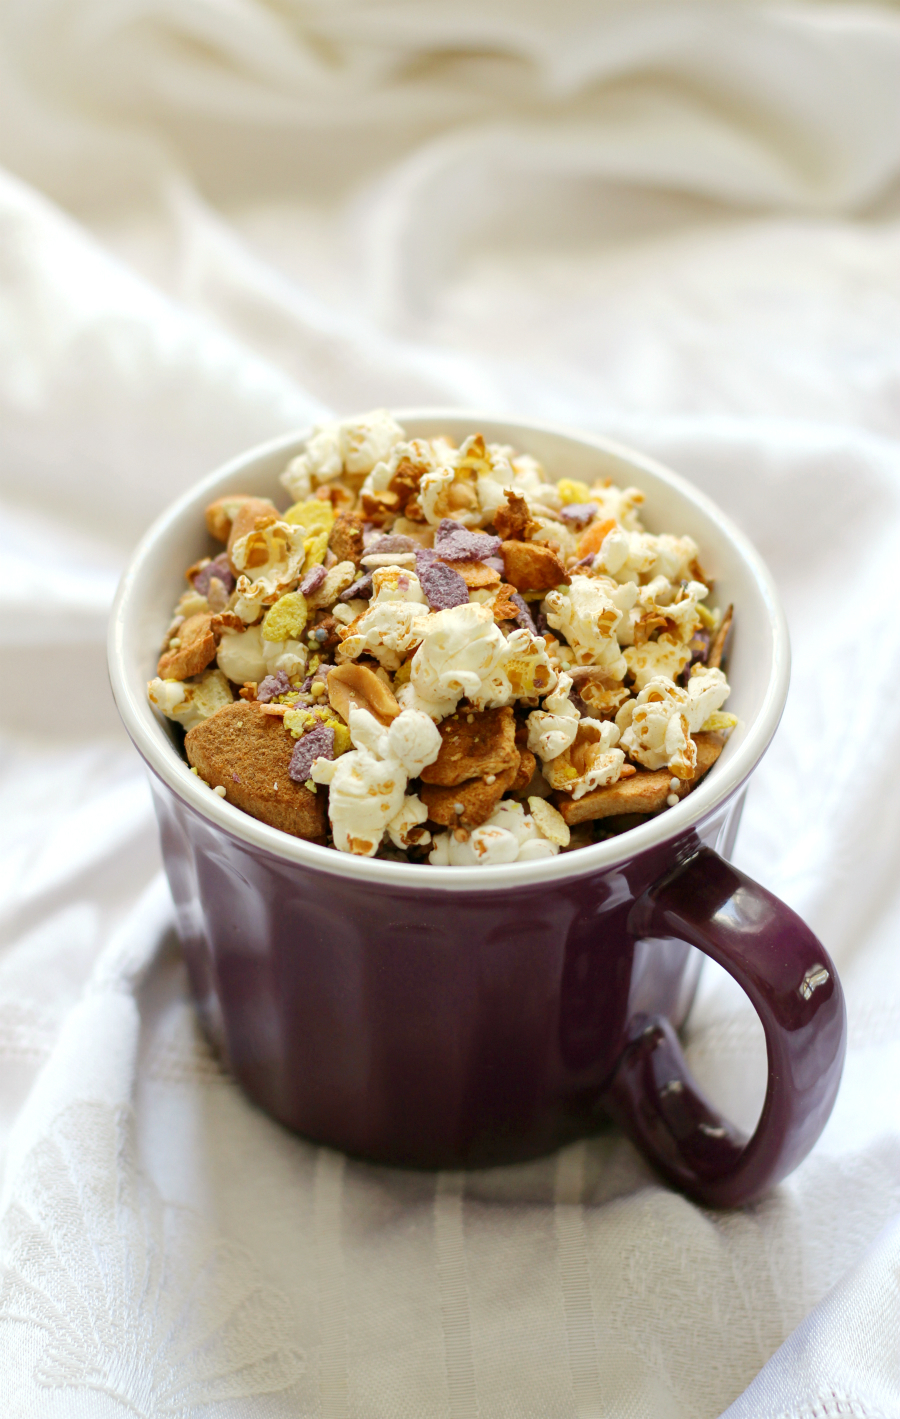 Circus Popcorn | Strength and Sunshine @RebeccaGF666 A healthier snack mix that the kids will love and will have fun making! A gluten-free, vegan, easy recipe for Circus Popcorn! Loaded with allergy-free Rainbow Rocks, sprinkles. peanuts, apple, and of course, fresh popcorn, all baked in the oven! Perfect for any kid-friendly party!